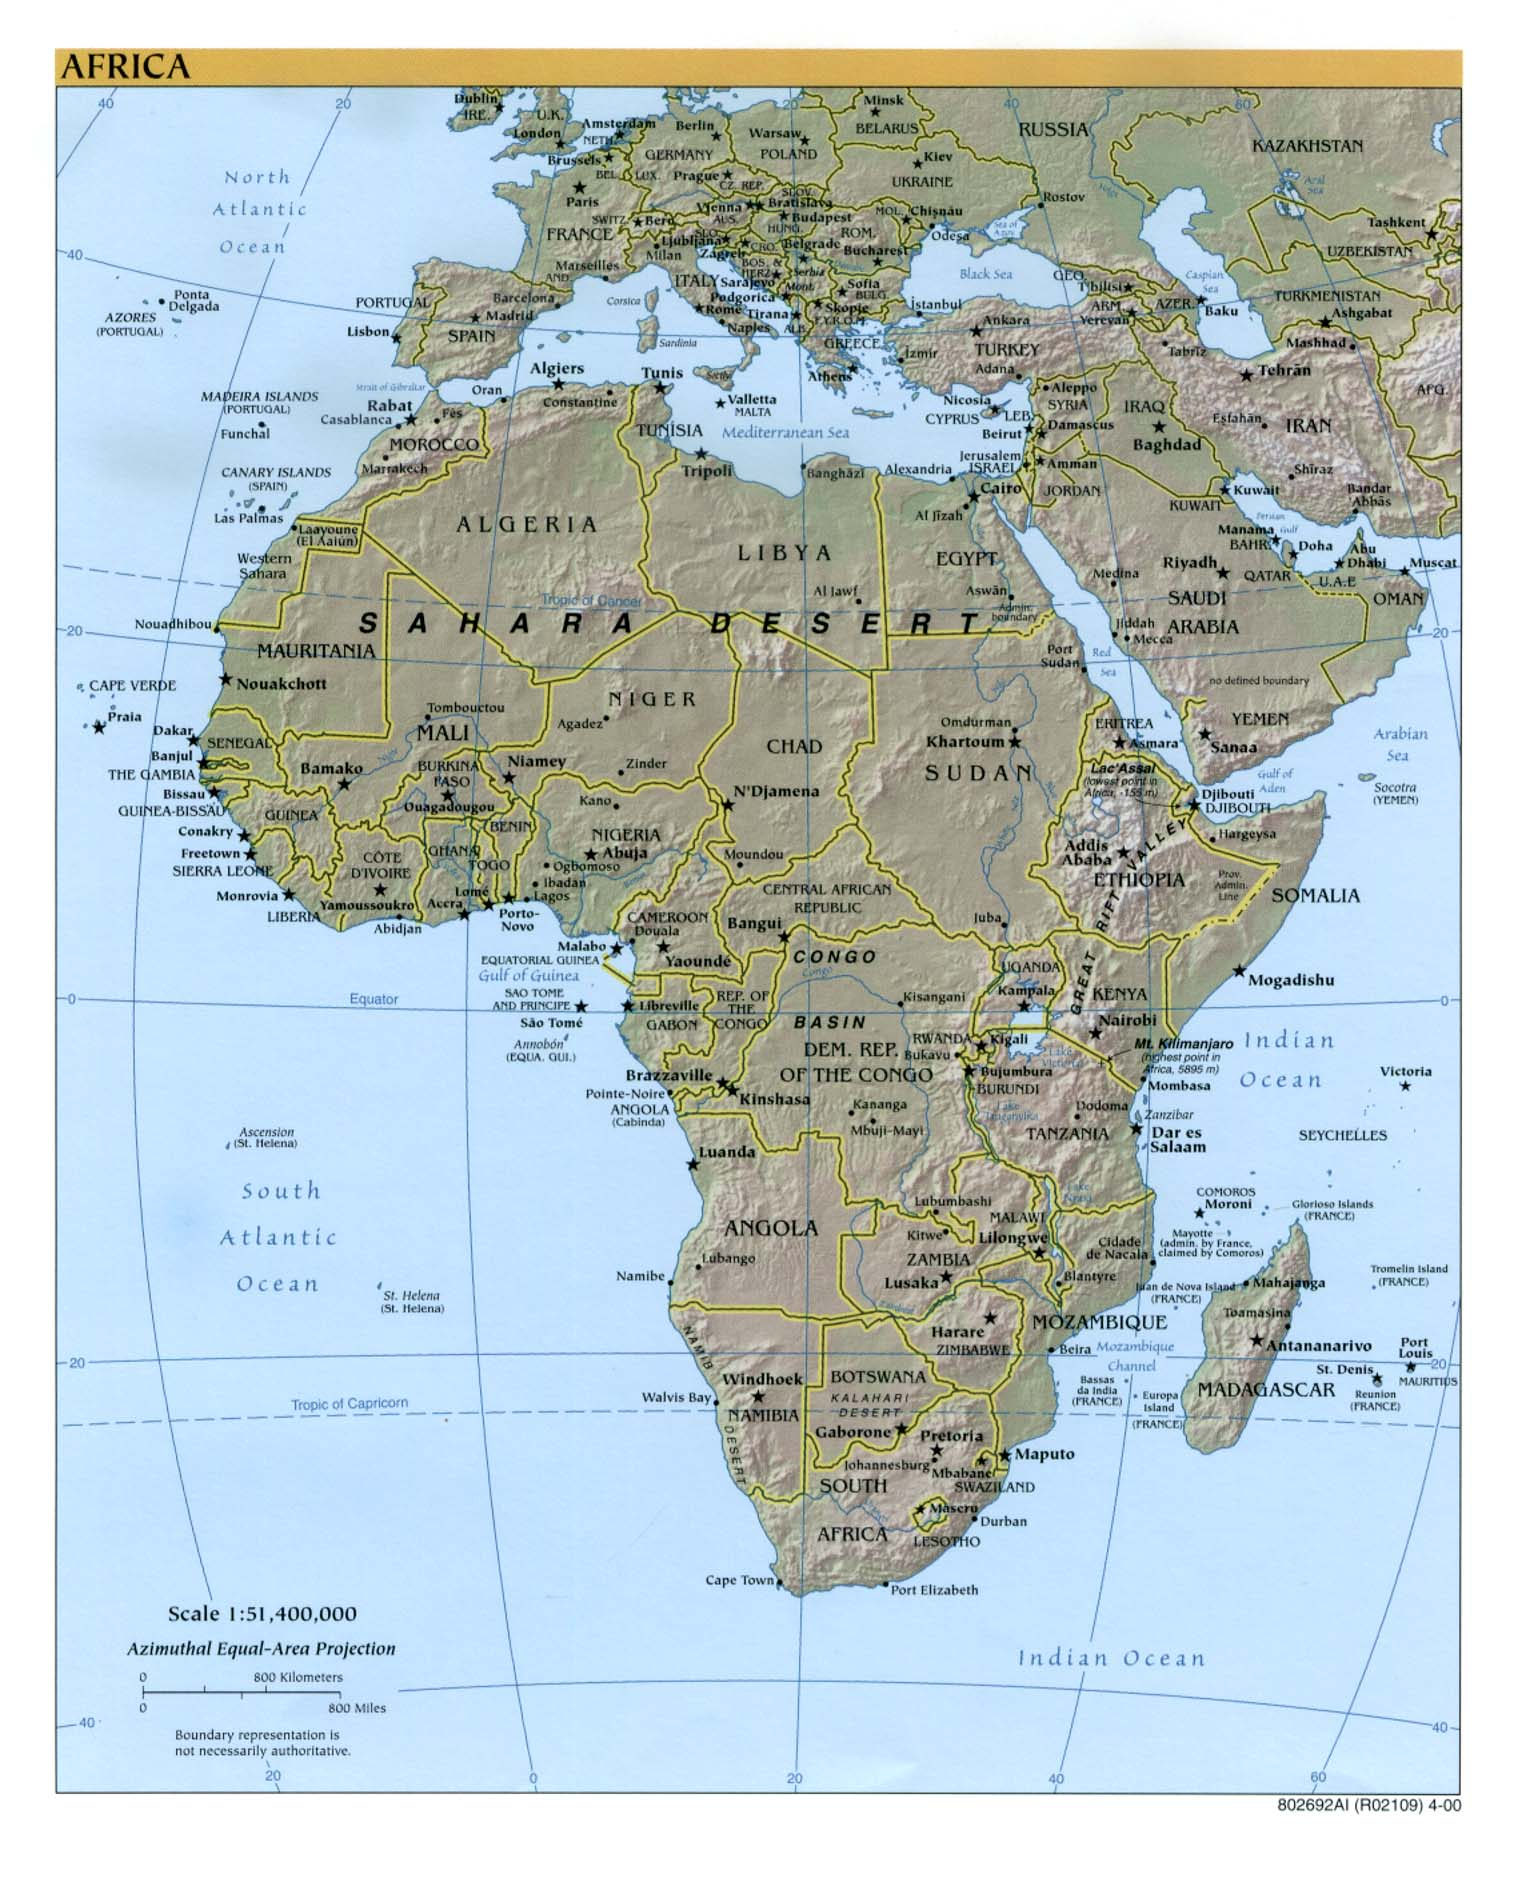 Picture of: Africa Maps Perry Castaneda Map Collection Ut Library Online